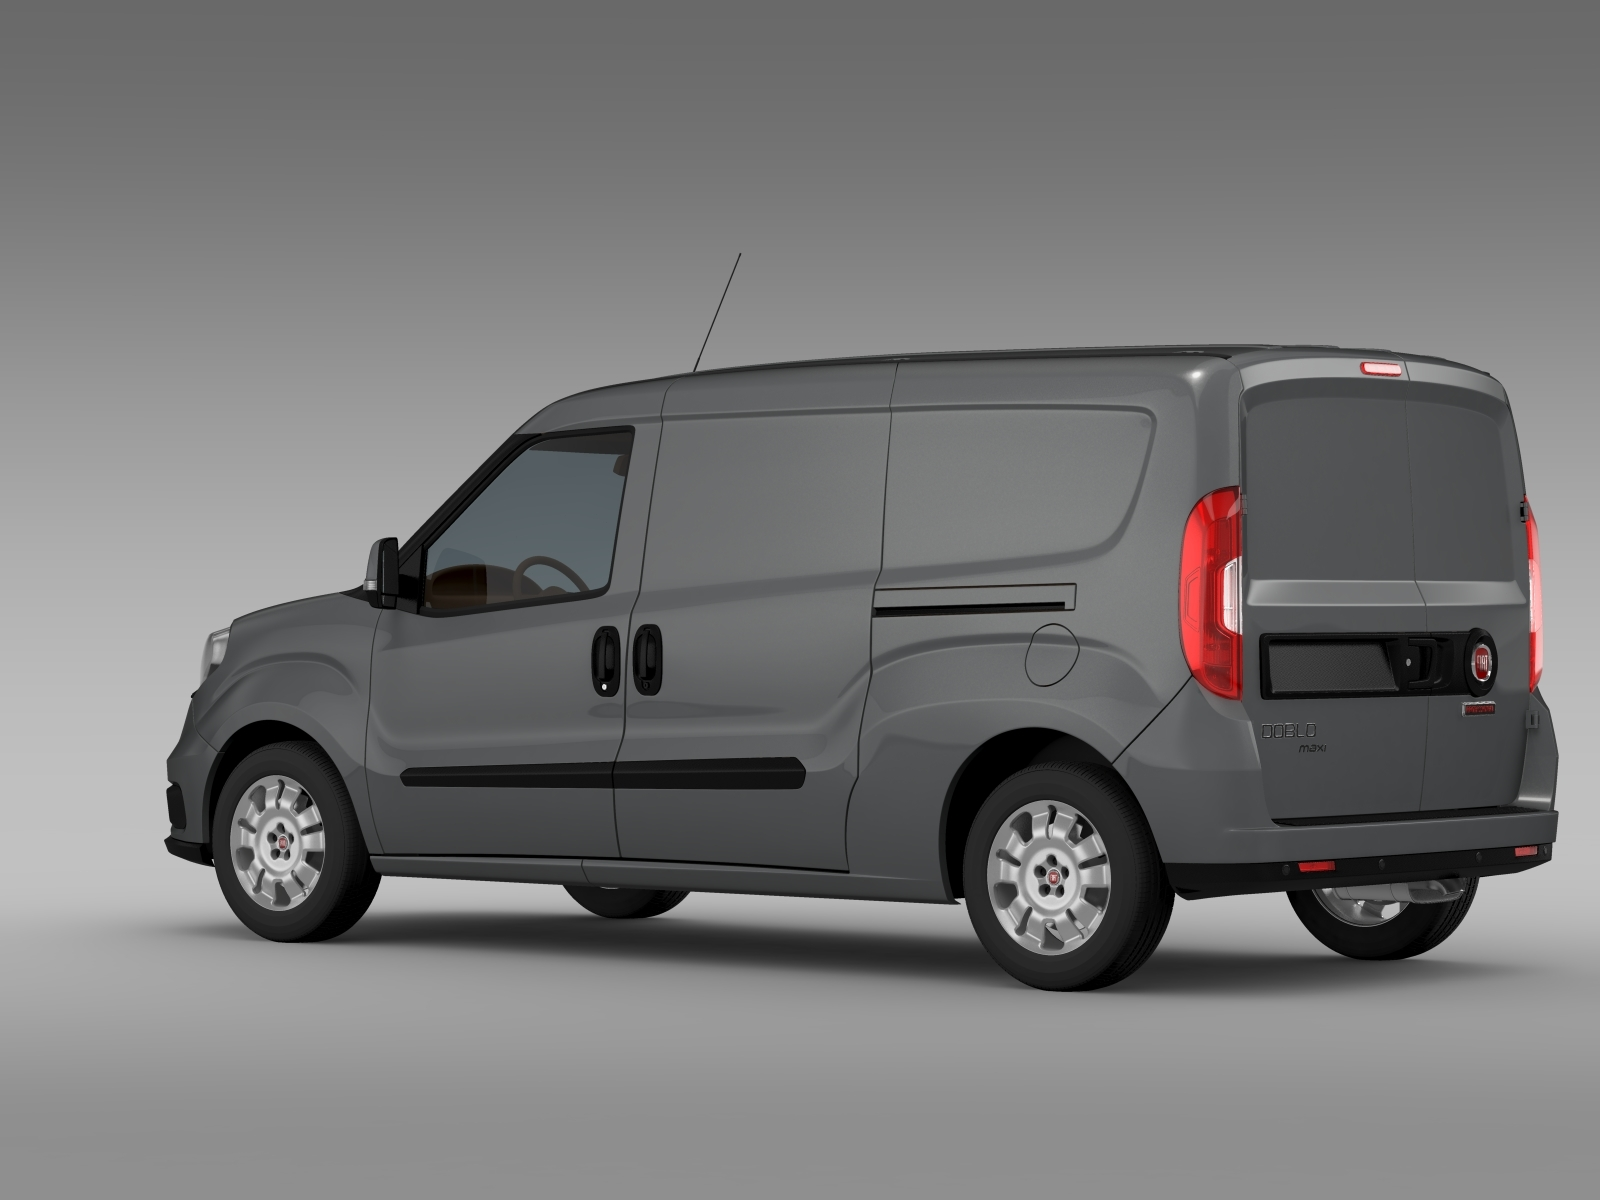 fiat doblo cargo maxi 263 2015 by creator 3d 3docean. Black Bedroom Furniture Sets. Home Design Ideas